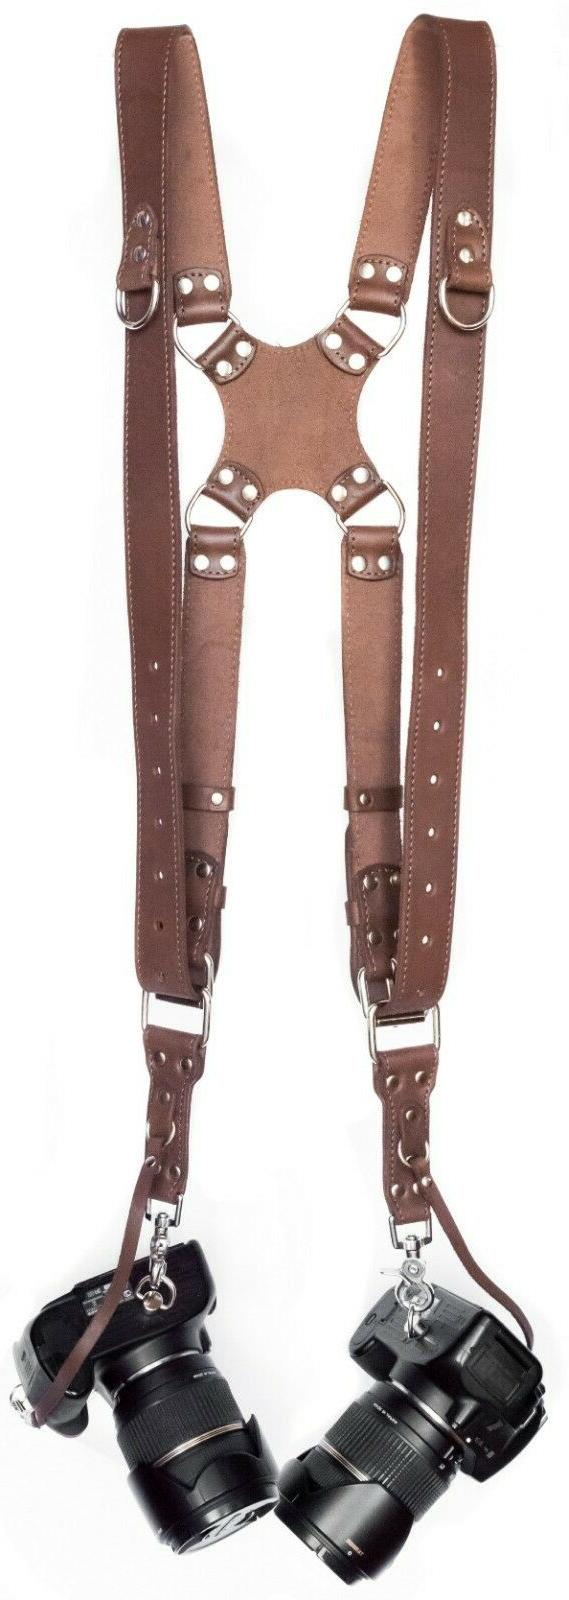 leather dual camera strap harness quick release